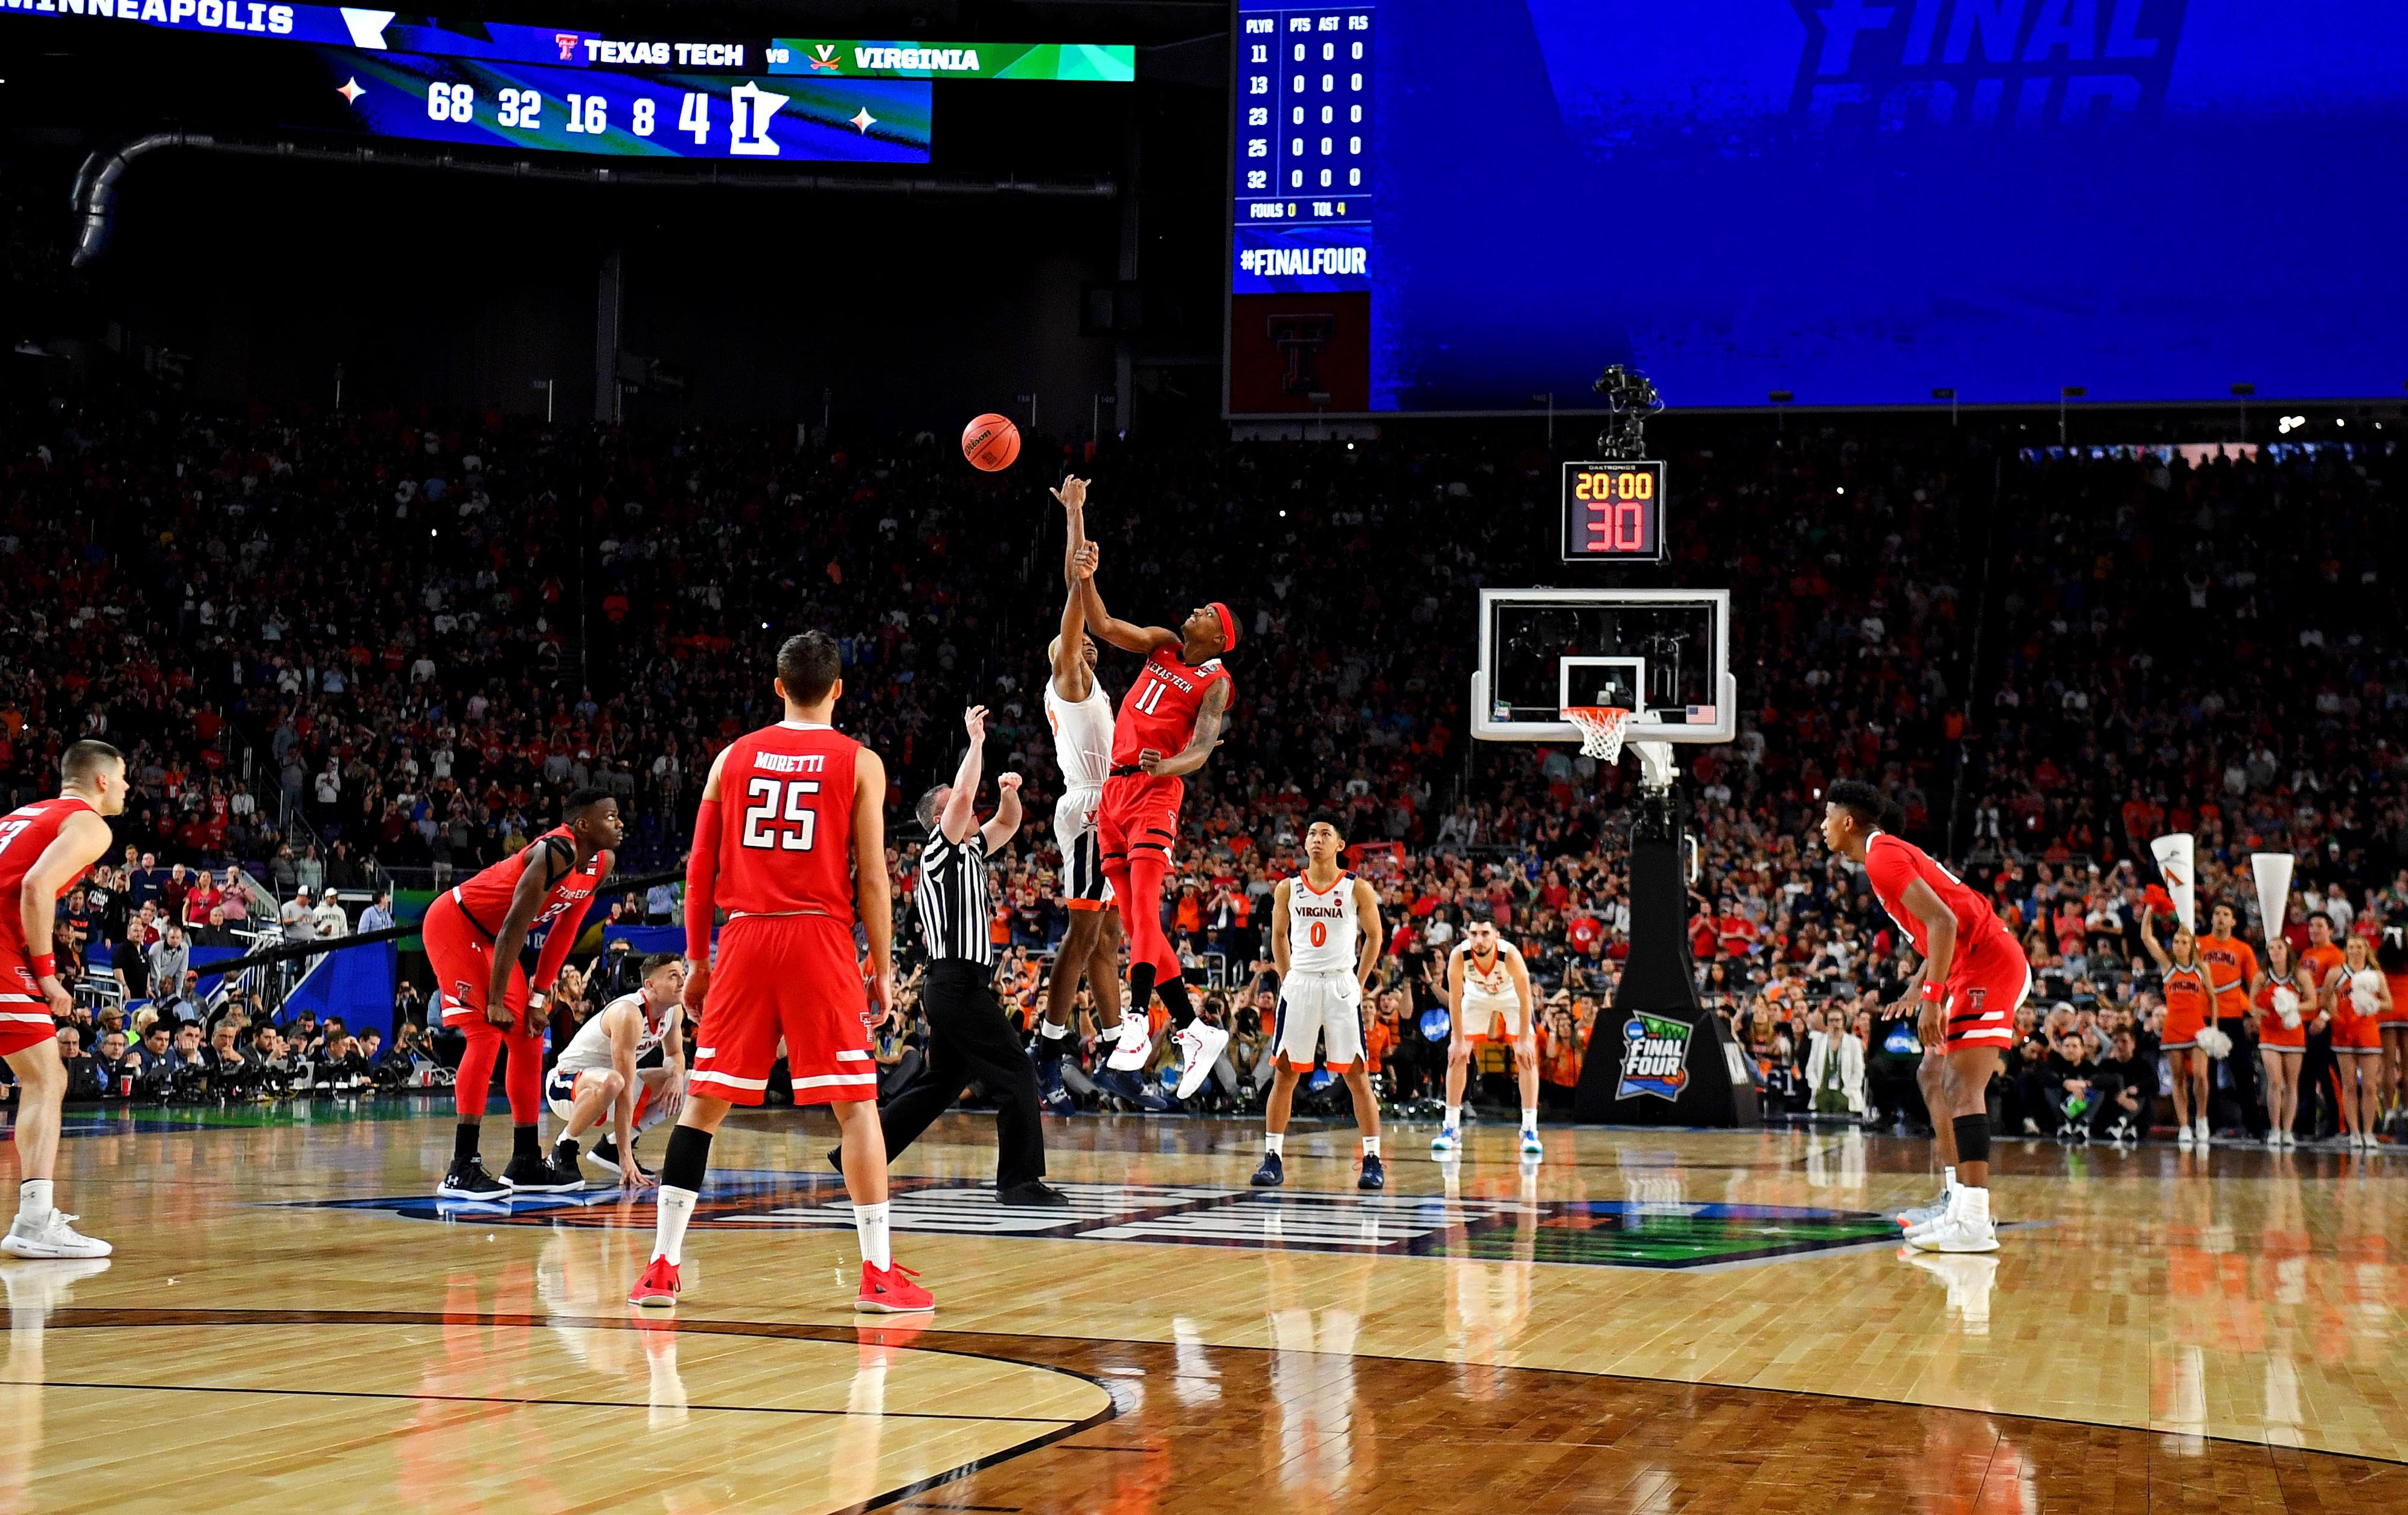 Texas Tech forward Tariq Owens (11) and Virginia forward Mamadi Diakite go for the opening tip in the championship game of the 2019 NCAA tournament.